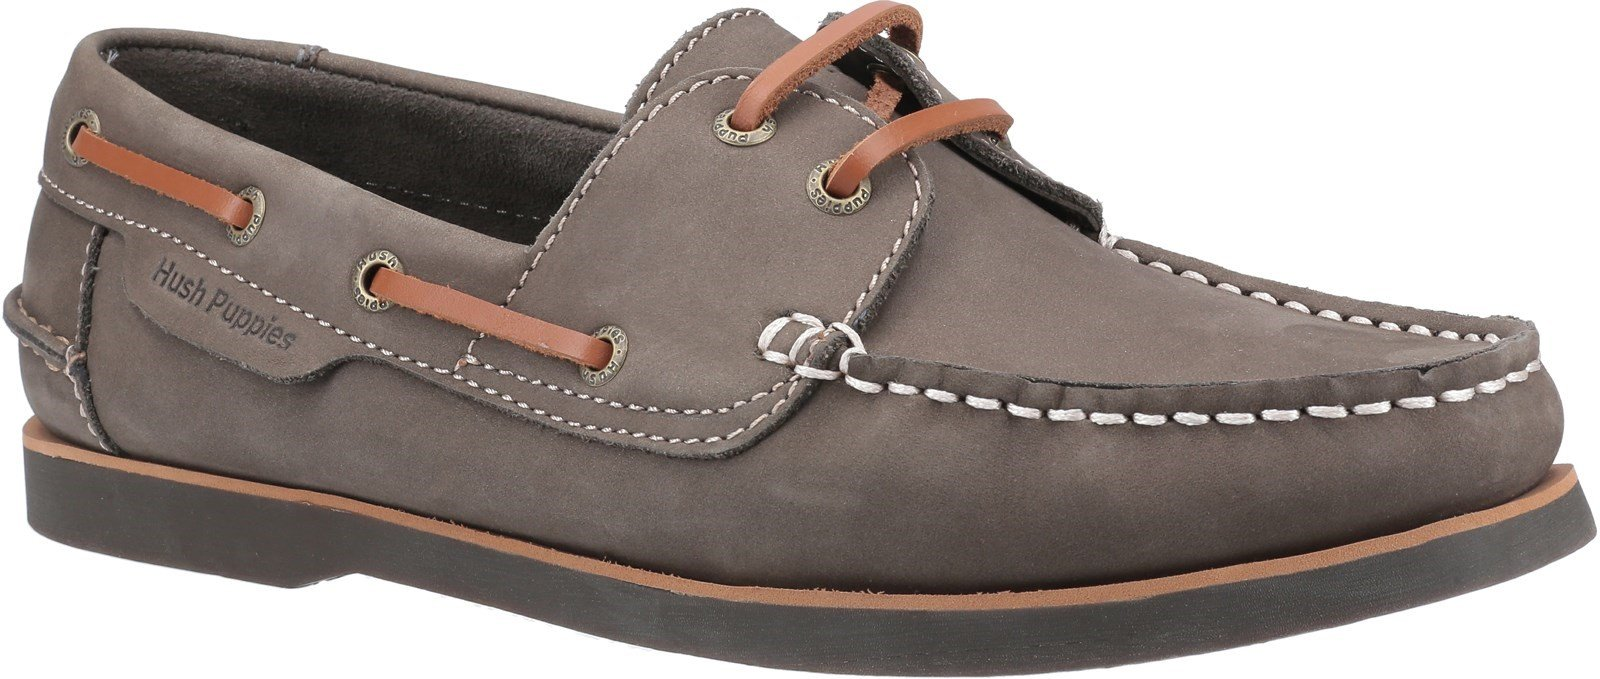 Hush Puppies Men's Henry Classic Lace Up Loafer Various Colours 28365 - Khaki 6